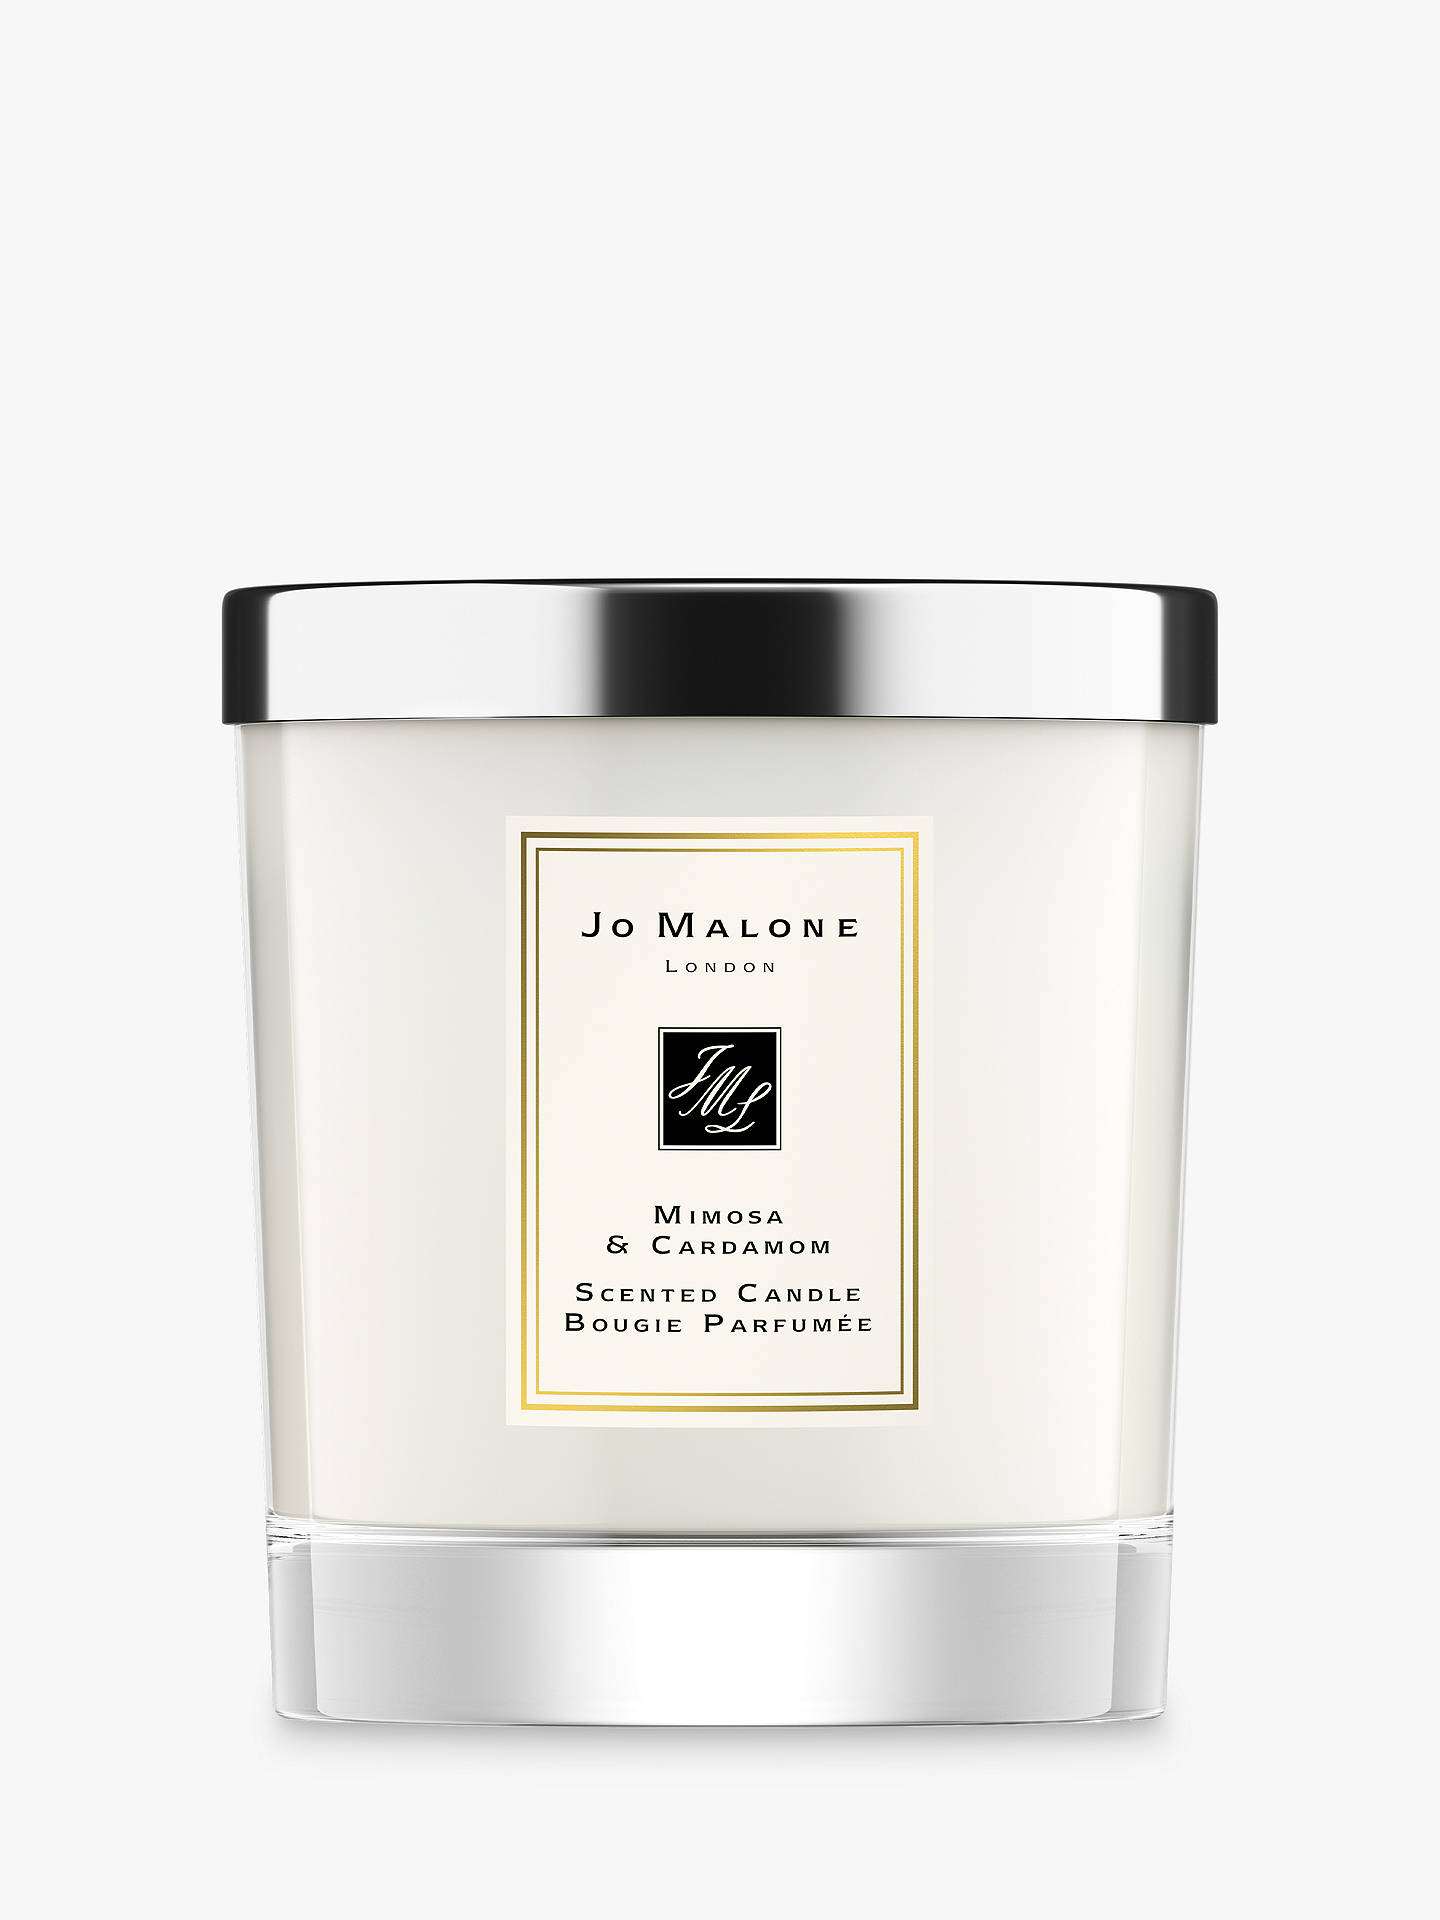 BuyJo Malone London Mimosa & Cardamom Scented Candle, 200g Online at johnlewis.com